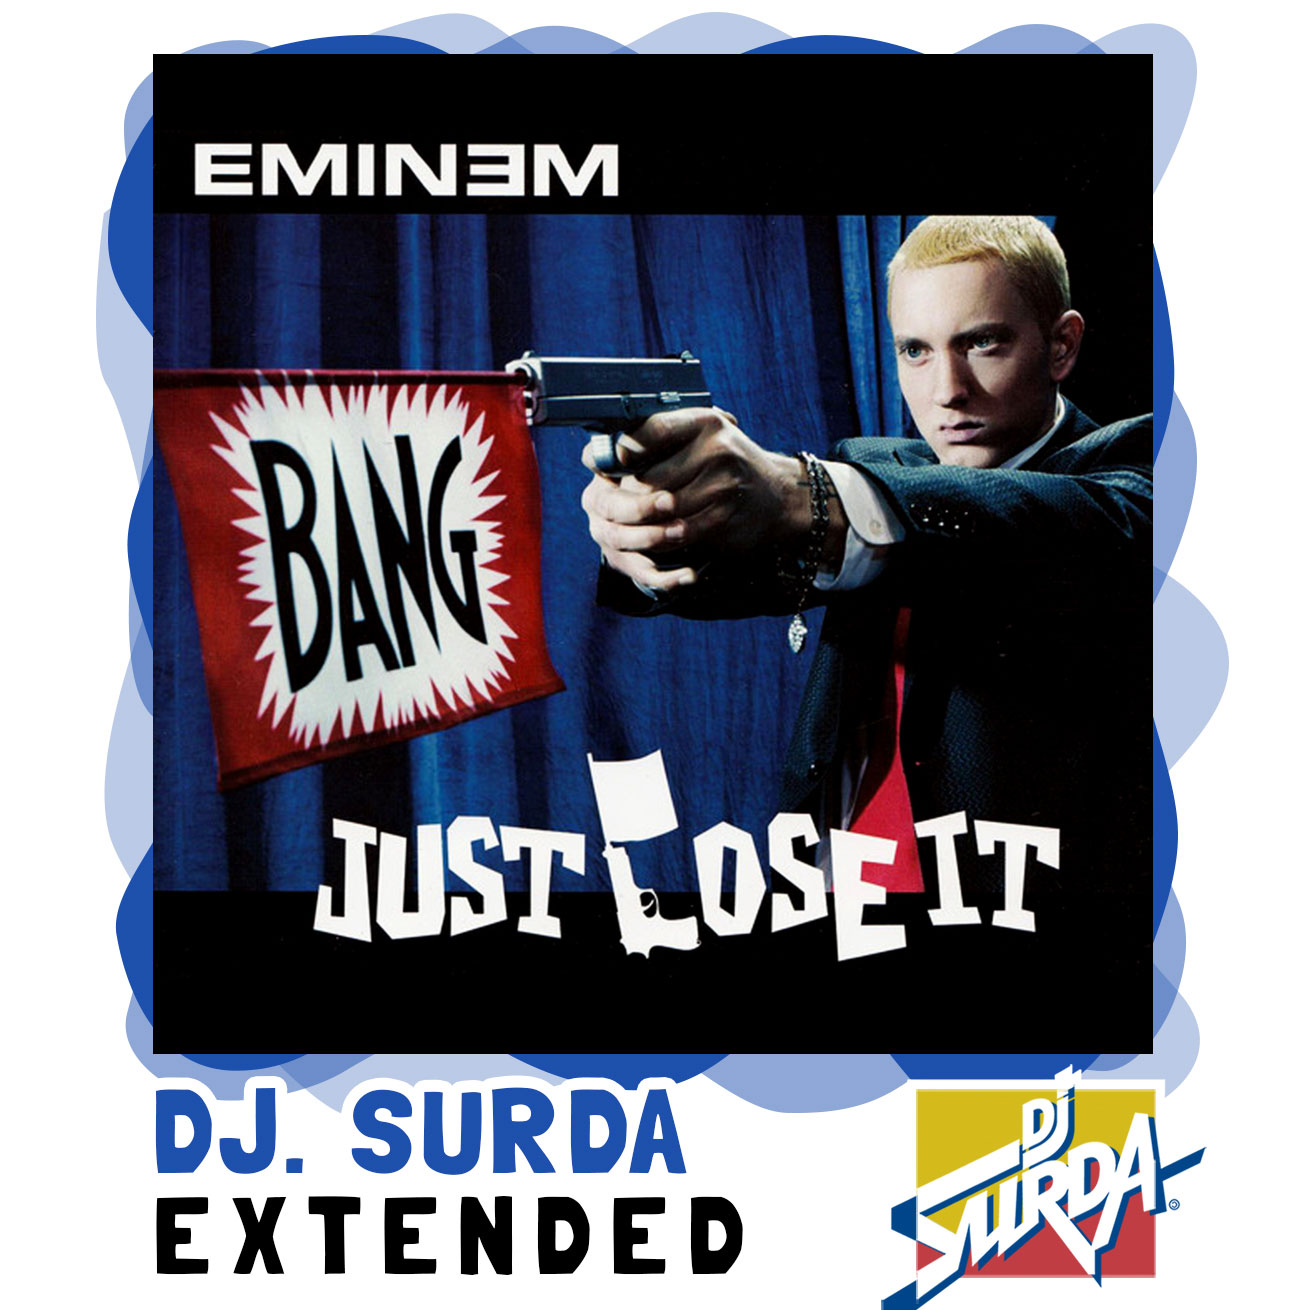 EMINEM – Just Lose It (Dj. Surda Extended Version)